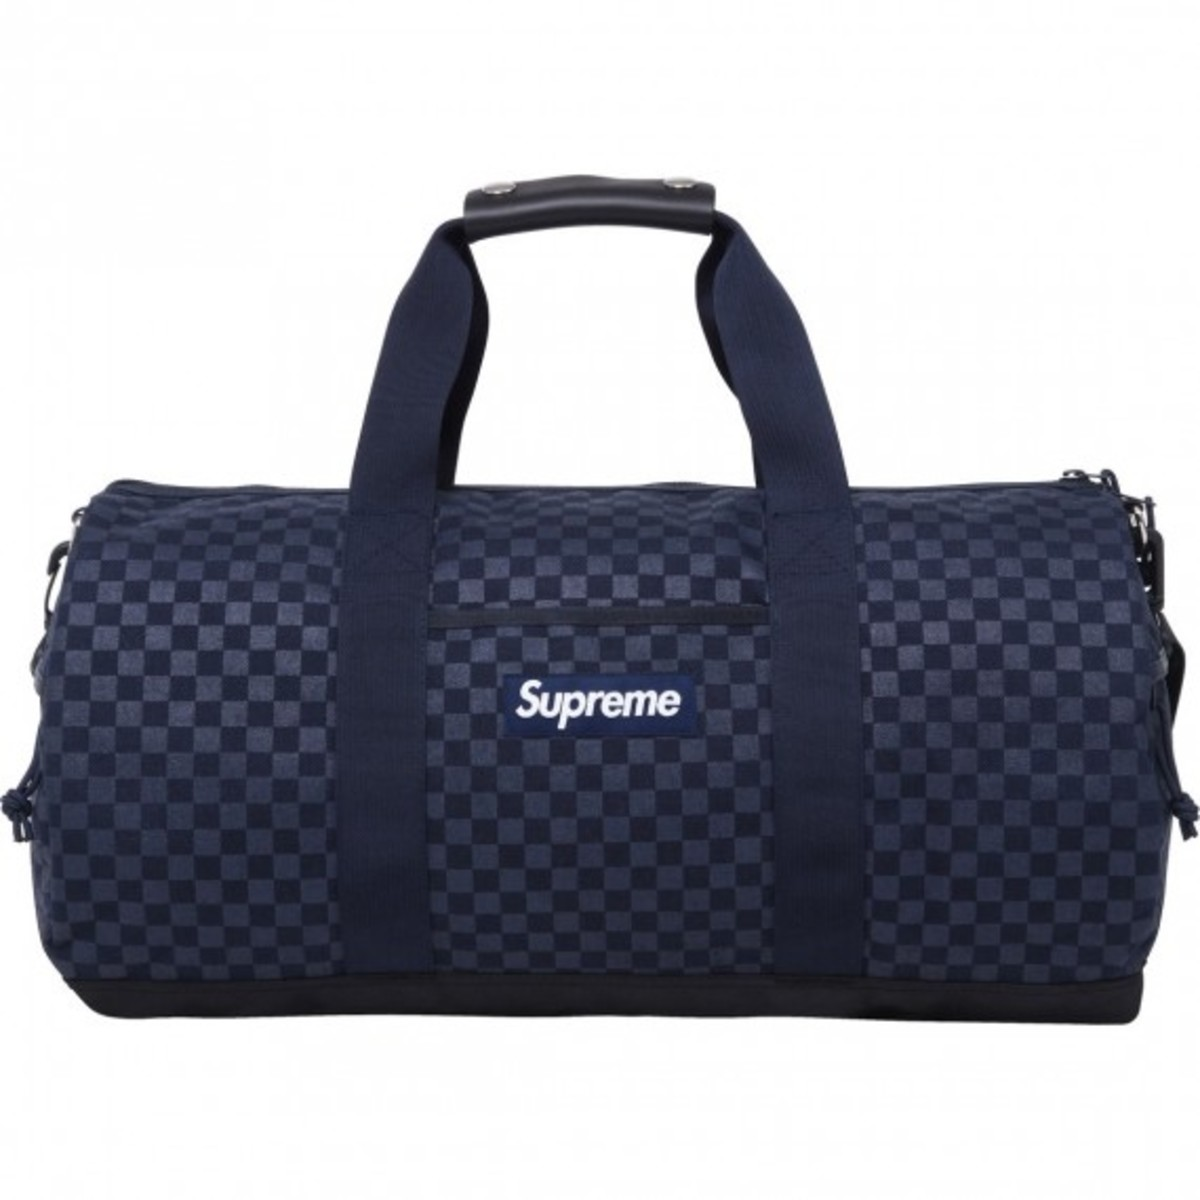 supreme-fall-winter-2011-collection-available-now-25